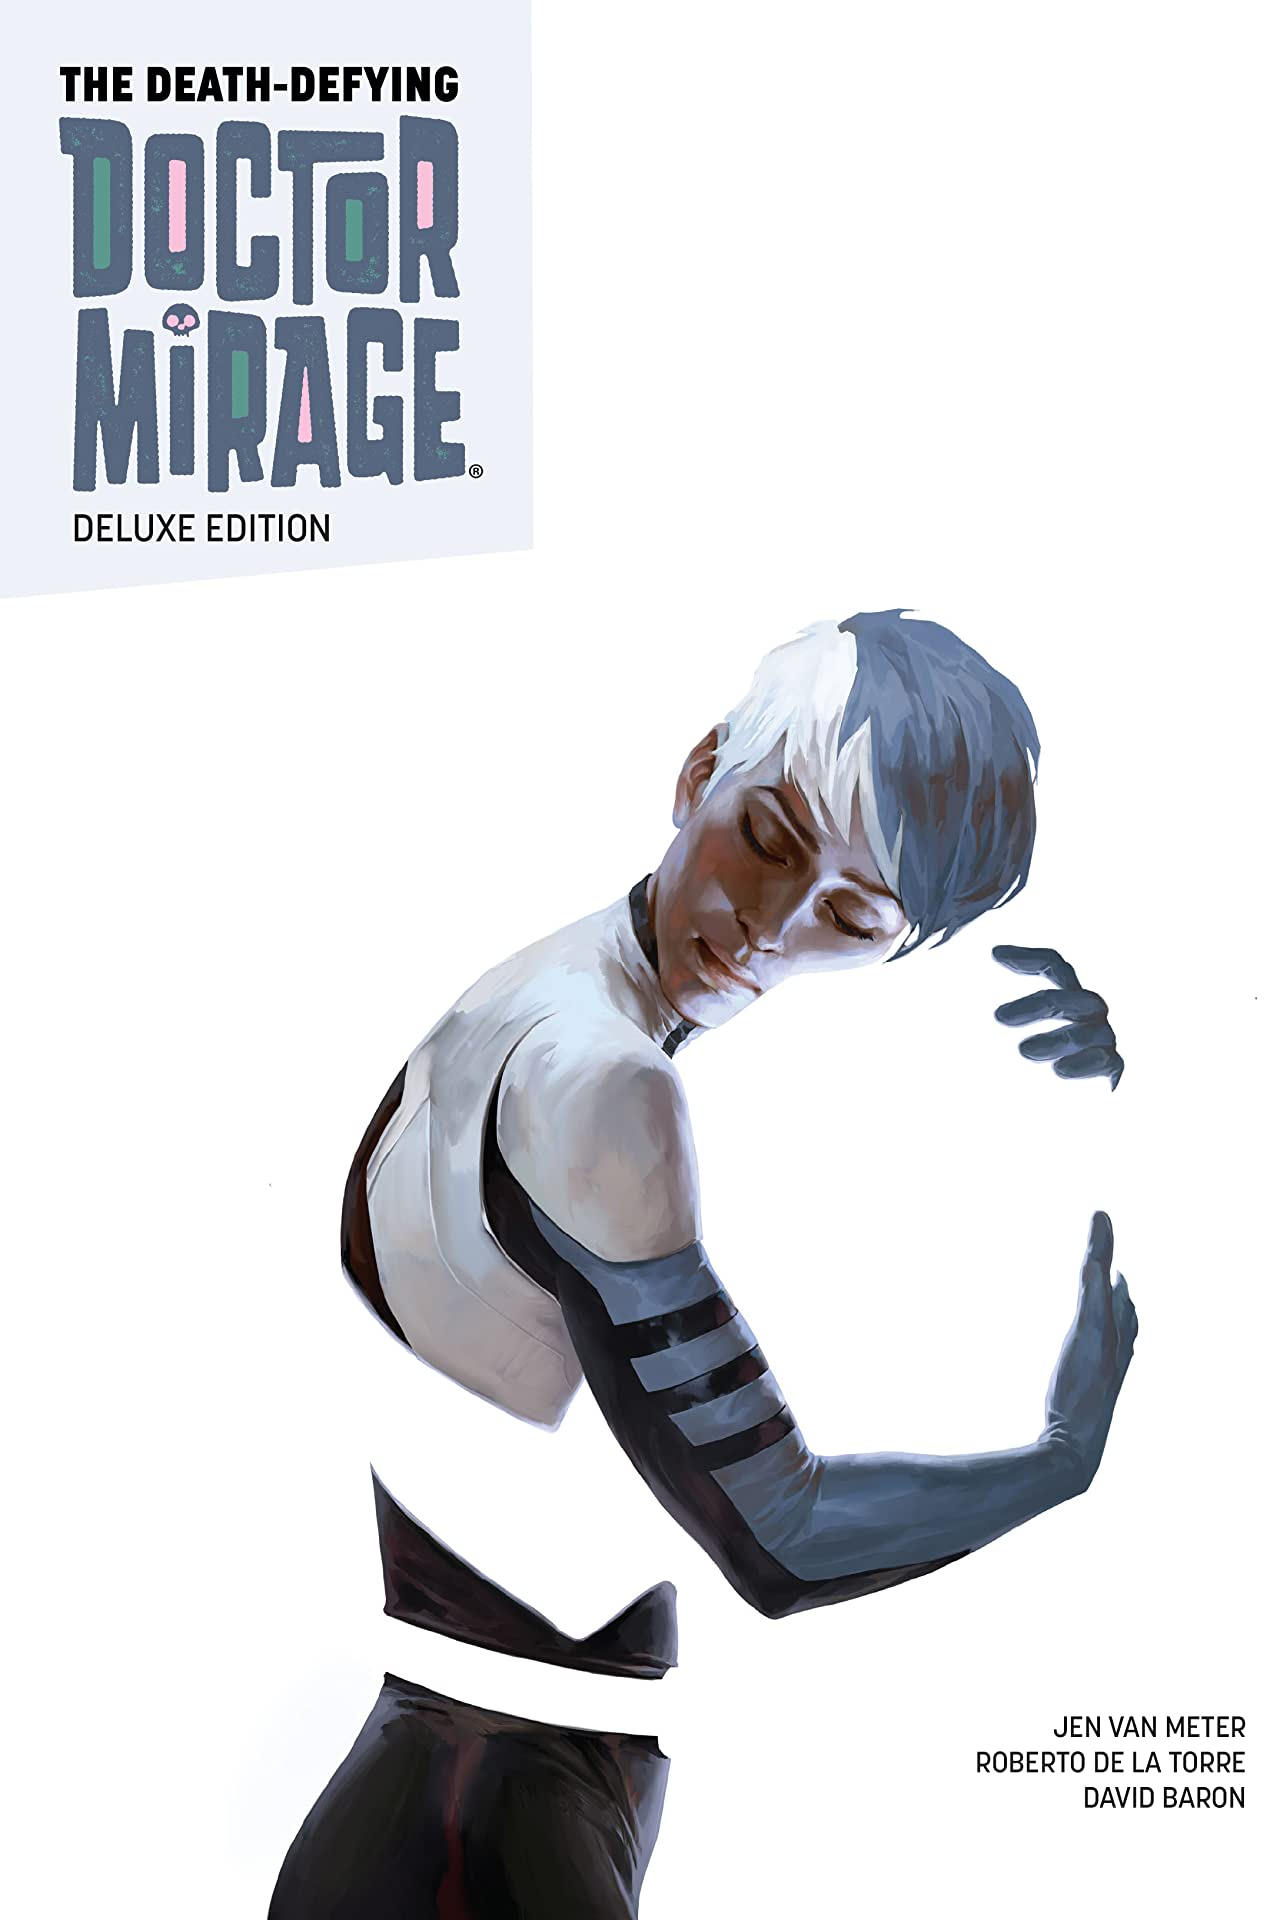 The Death-Defying Doctor Mirage Deluxe Edition Vol. 1